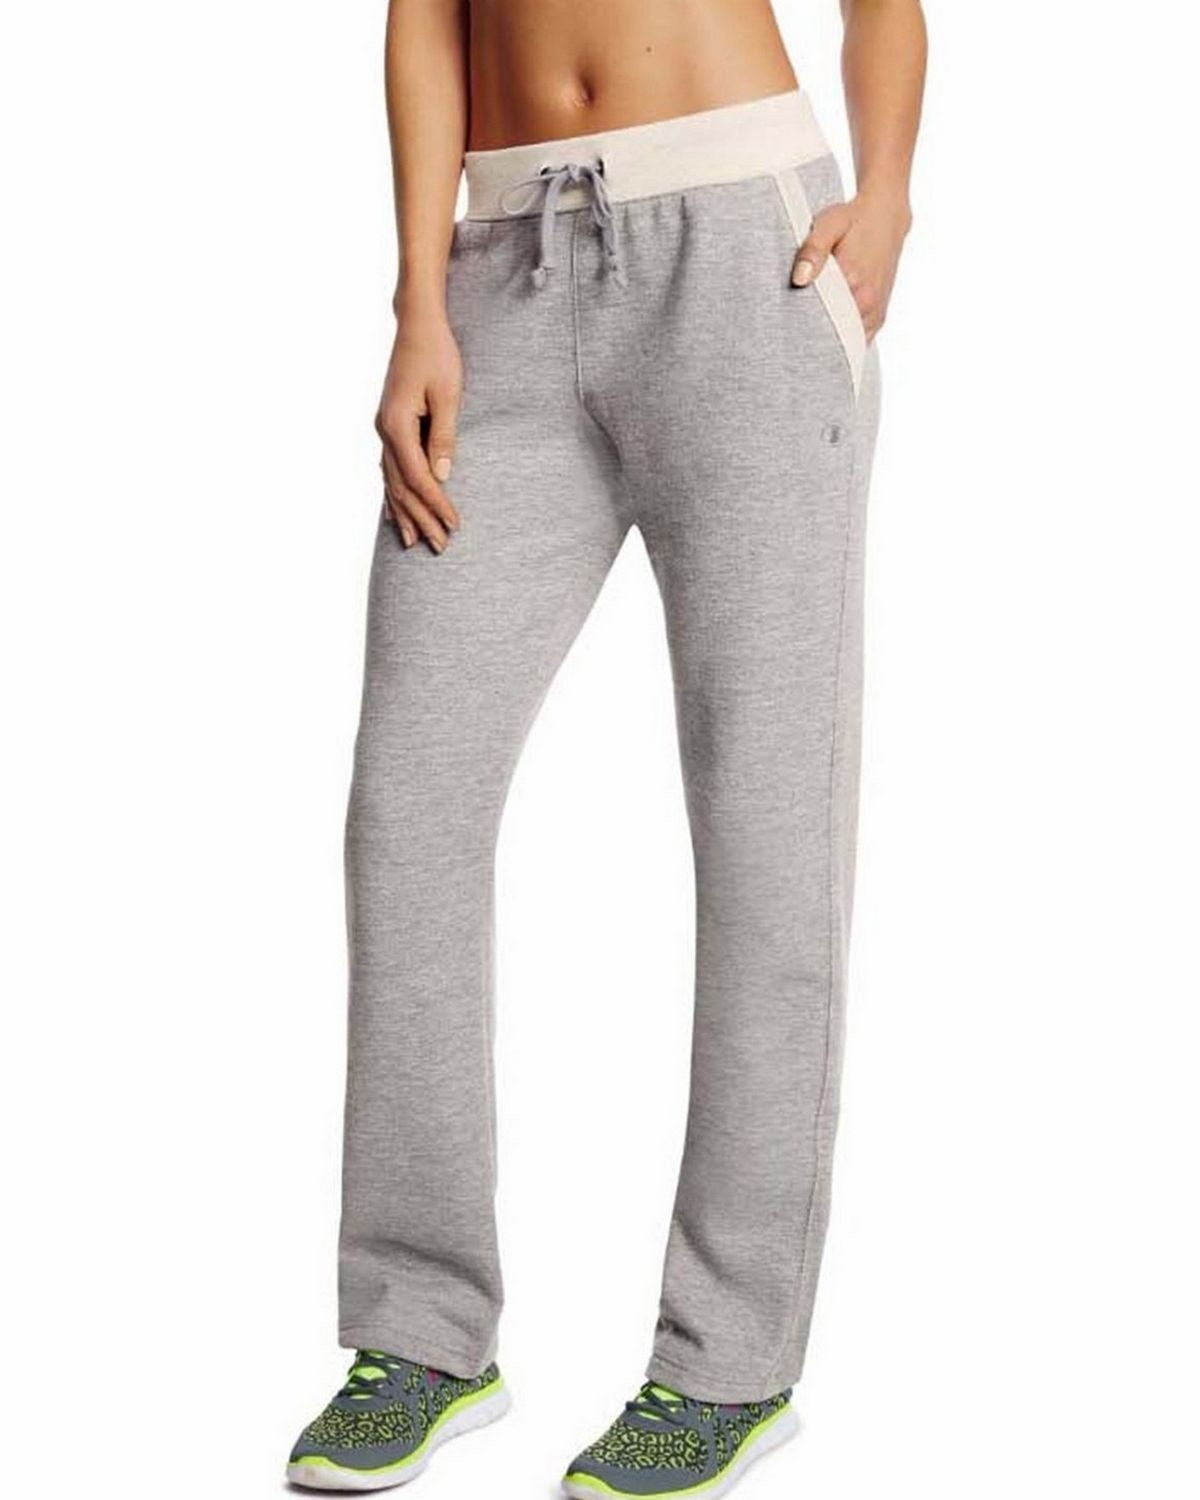 Champion M1064 Womens Fleece Bottom Pants - Granite Heather - XL M1064